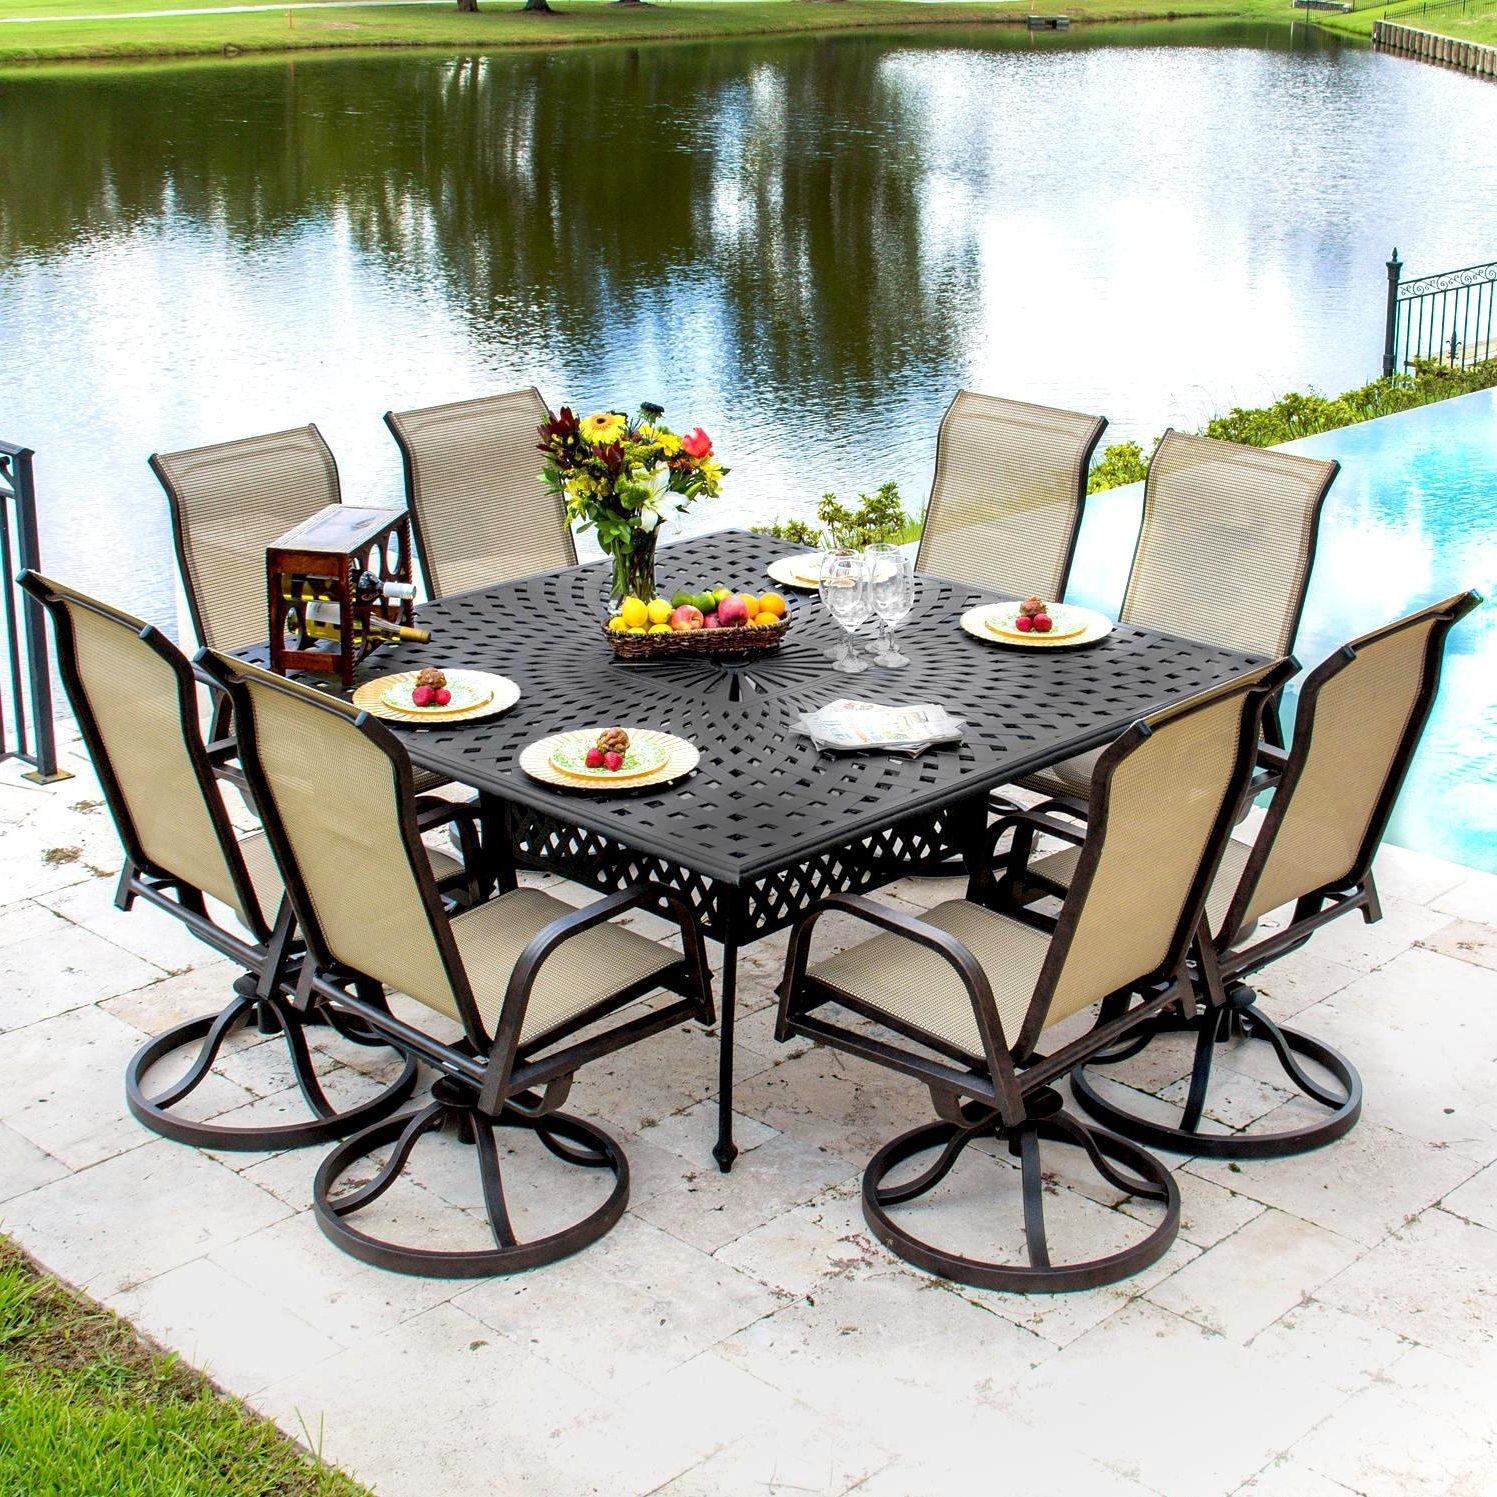 Incredible Sling Patio Furniture Sets Atio Dining Table Set Unique In Best And Newest Patio Conversation Sets With Rockers (View 20 of 20)